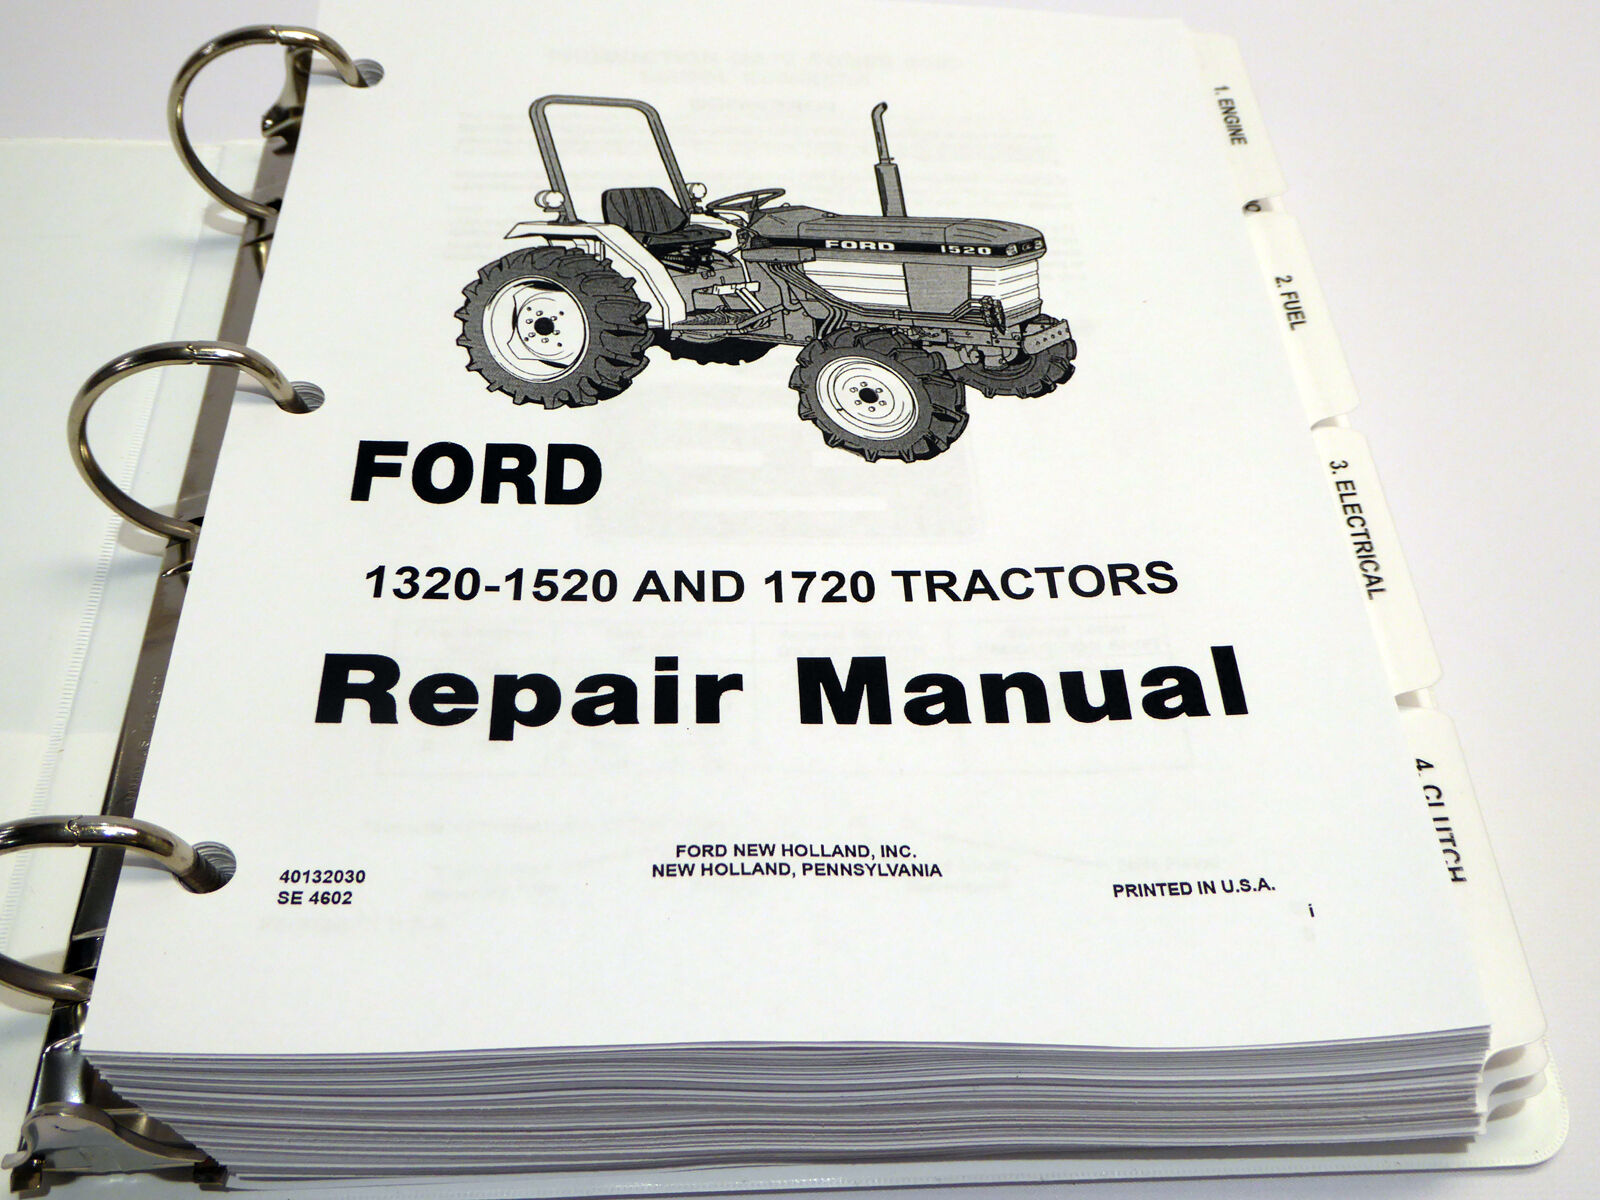 Ford 1320, 1520, 1620, 1715, 1720 Tractor Service Manual Repair Shop 5000